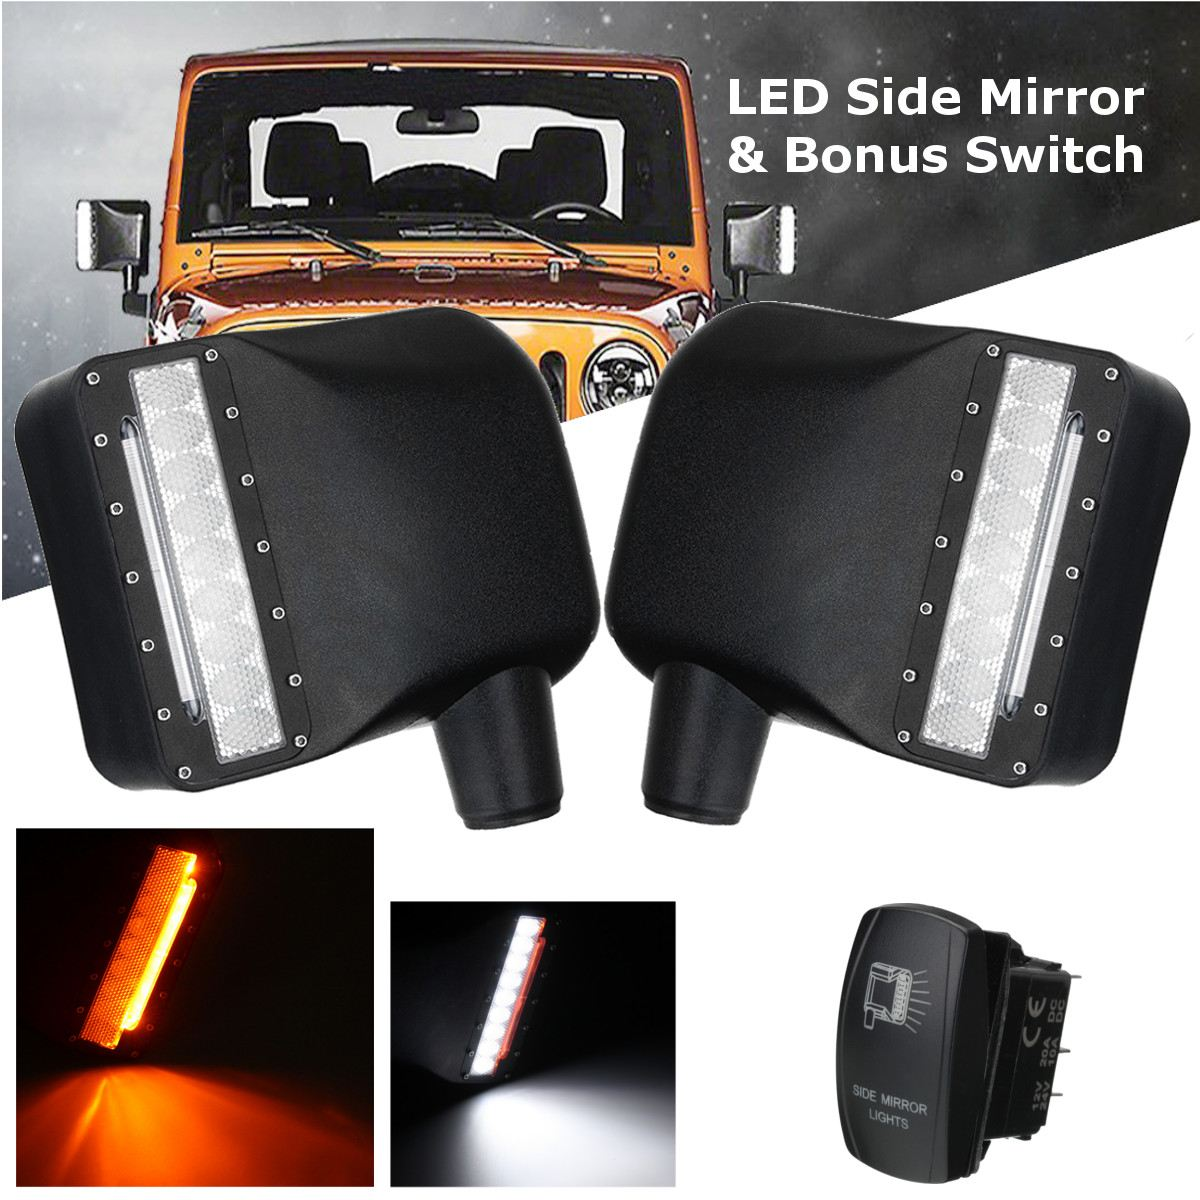 Pair LED Side Mirror Housing Turn Signal Lights+Switch For Jeep For Wrangler JK 07-16 last designed high quality side view mirror cover with led turn signal light for jeep wrangler jk